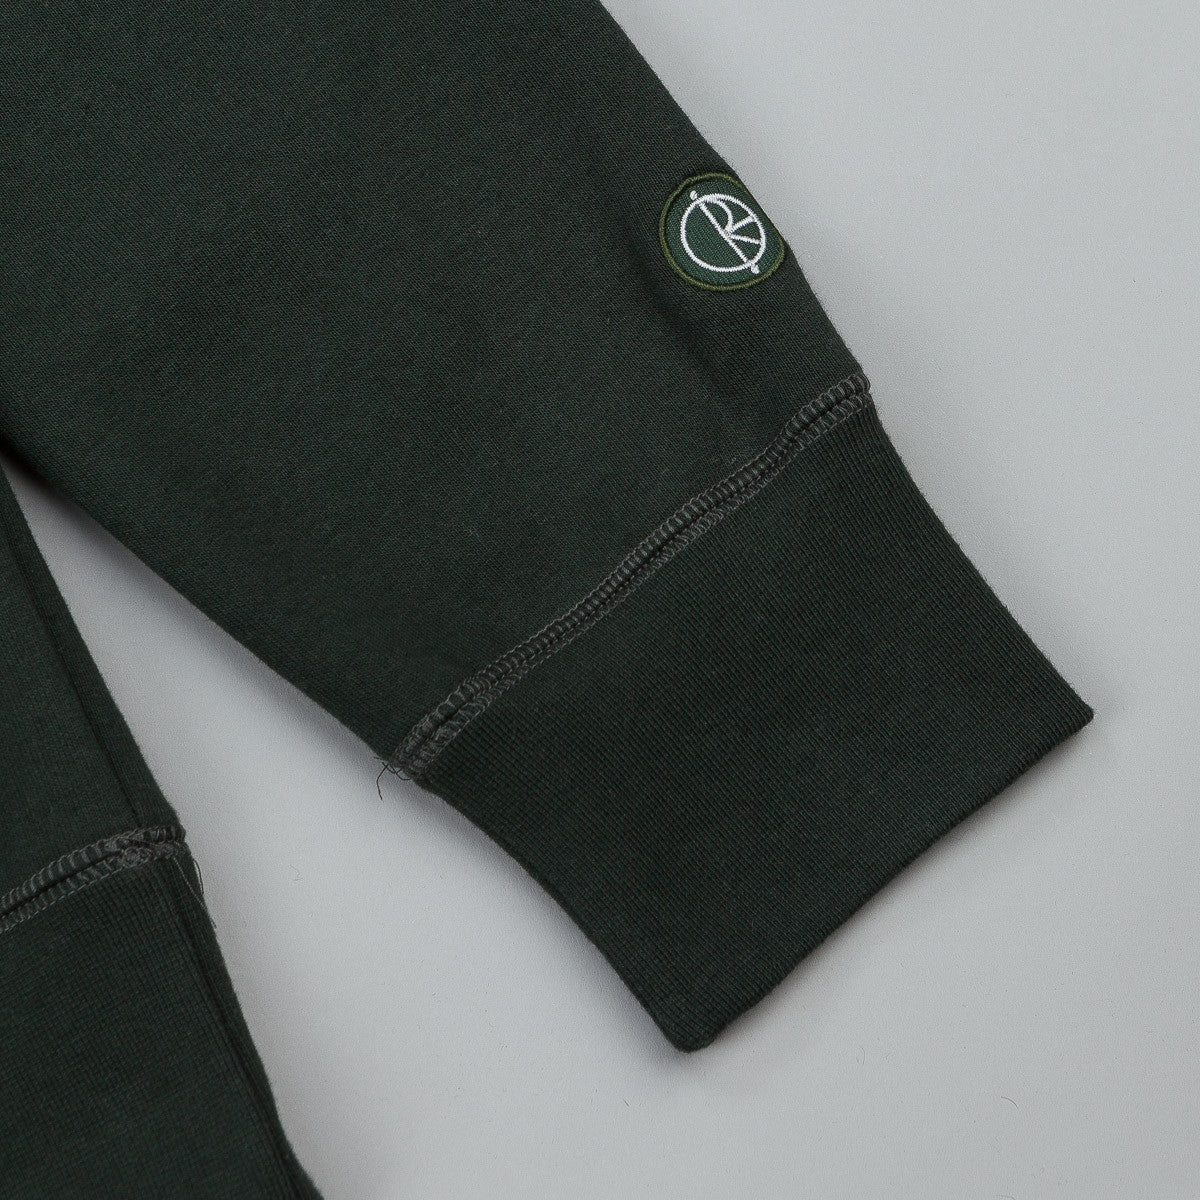 Polar Stroke Logo Hooded Sweatshirt - Botanical Green / White